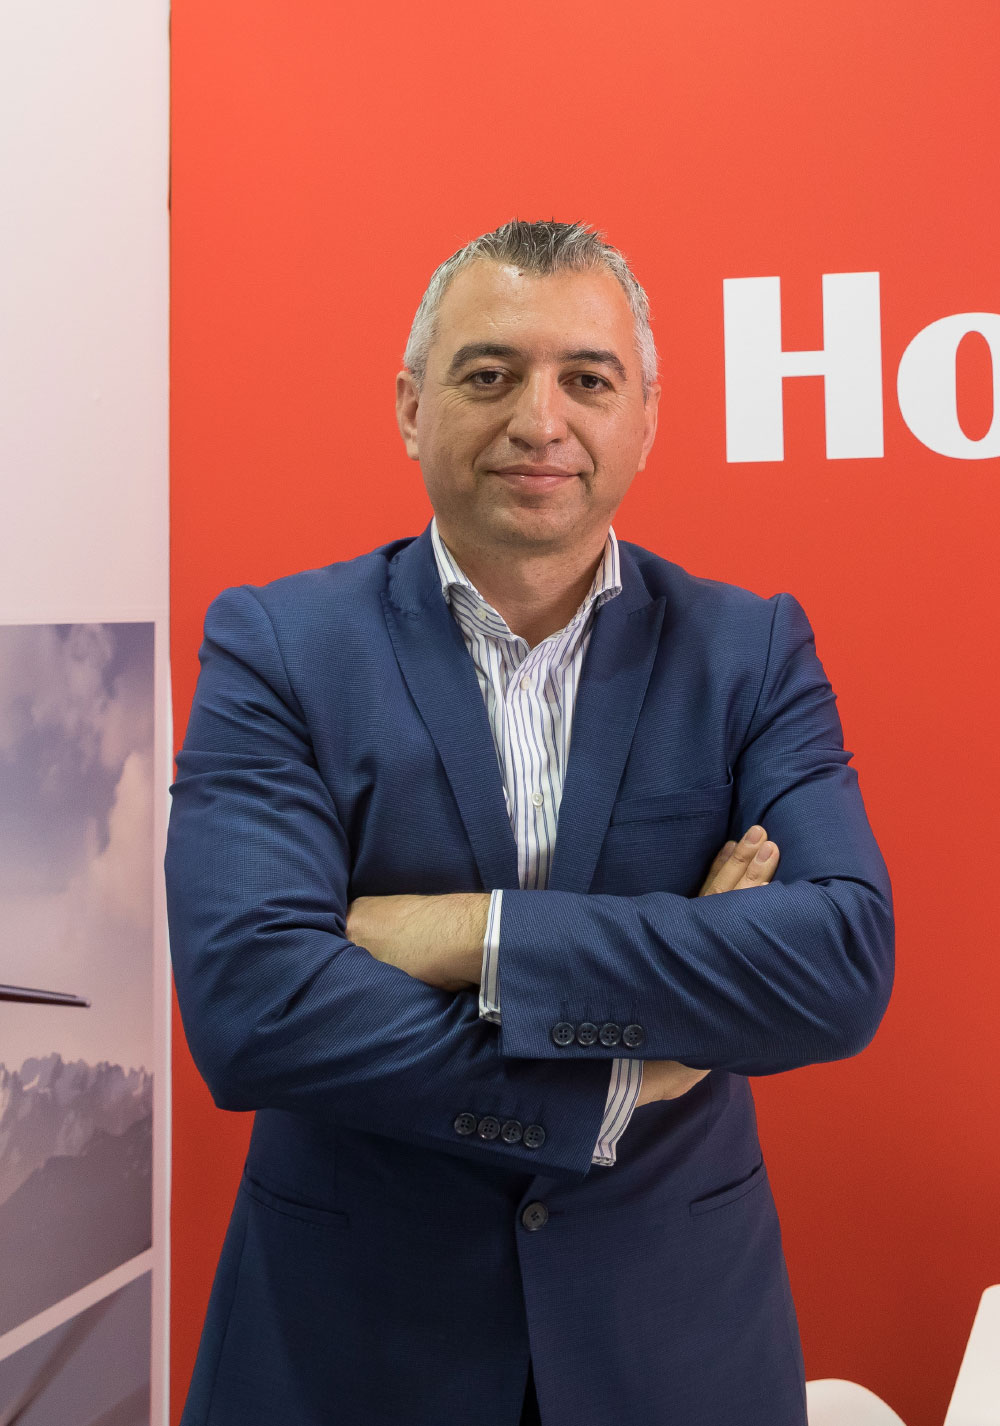 Honeywell Turkey's Valuable Contributions to the Turkish Defence Industry, Aviation and the Space Industry, Fueled by Turkey's Resolve to Manufacture its Own Platforms